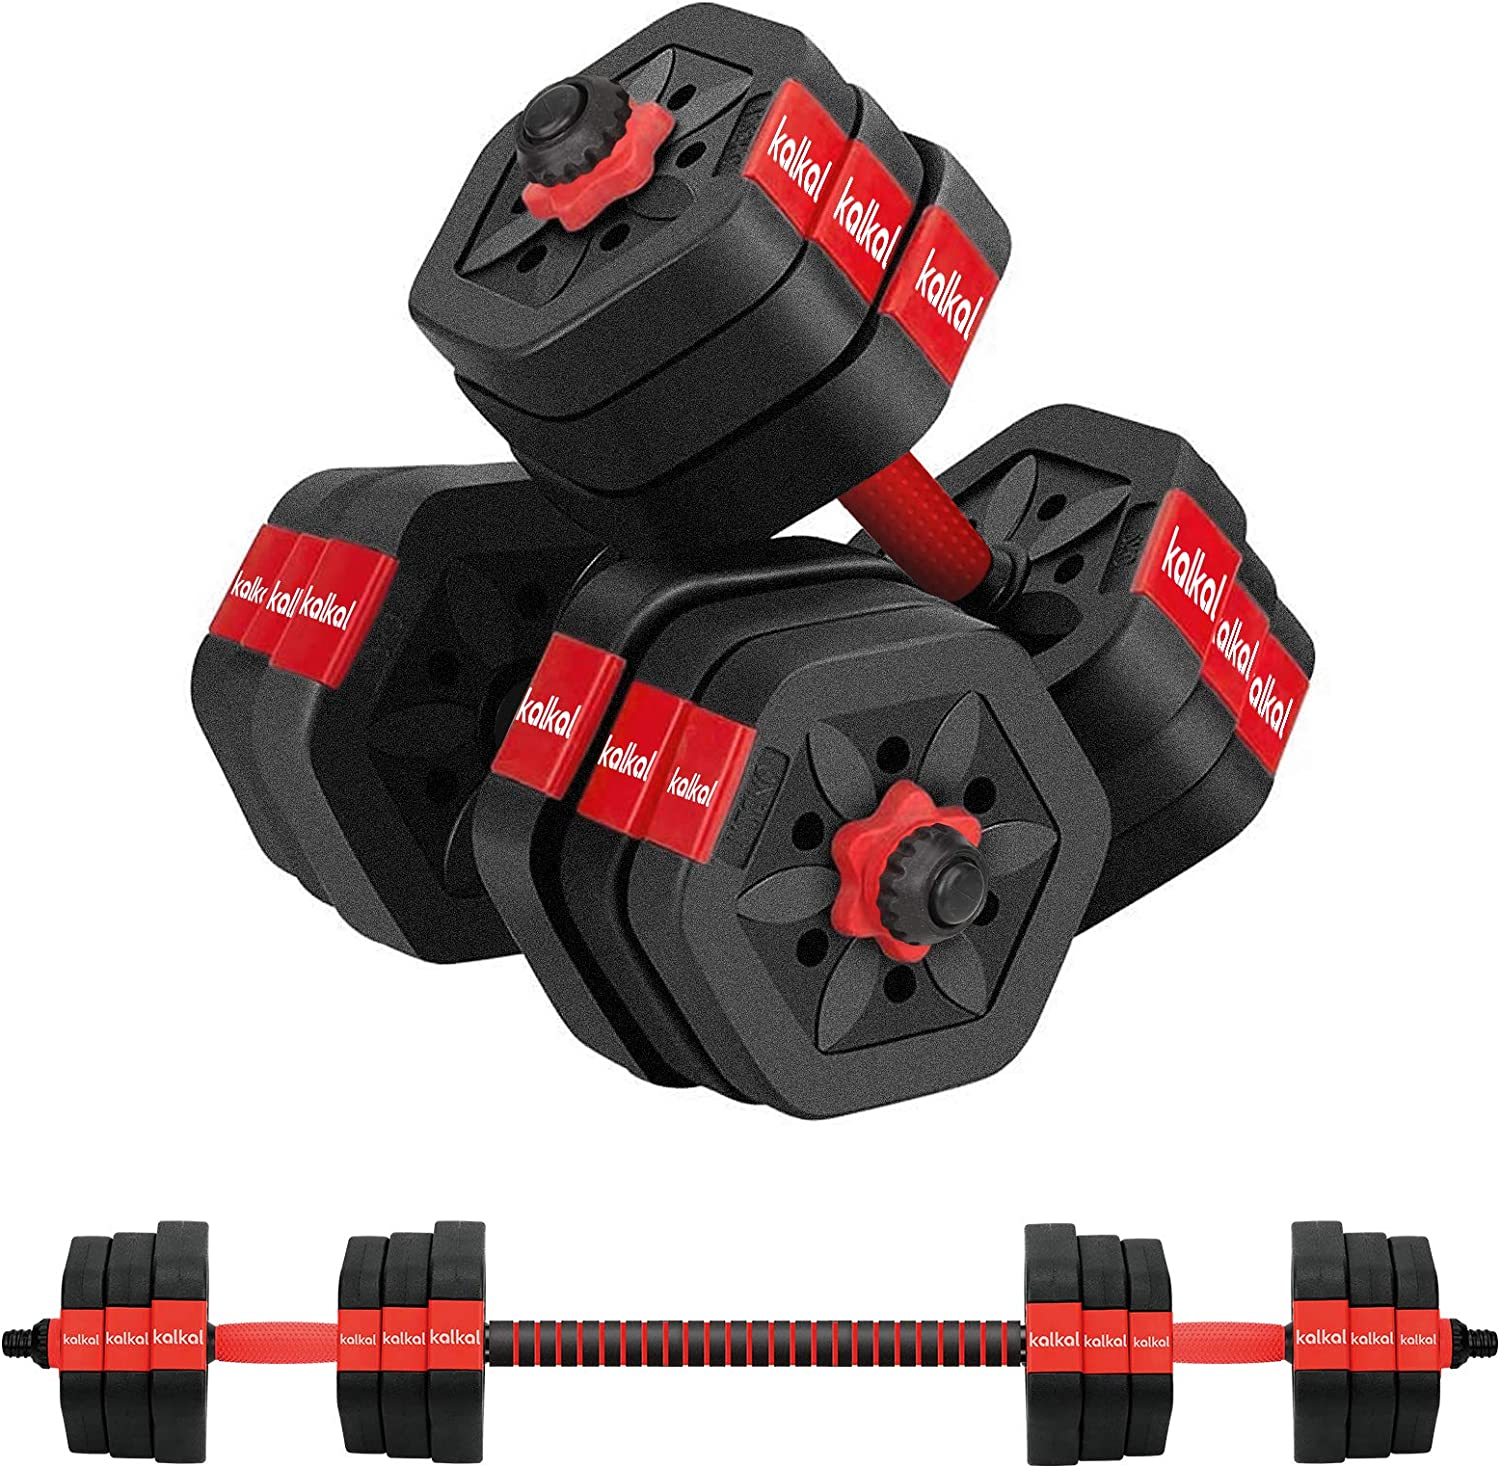 Kalkal Adjustable Dumbbells 44Lbs Barbell Weight Set, Weights Dumbbells Set with Connecting Rod for Men and Women Strength Training Home Gym Workout